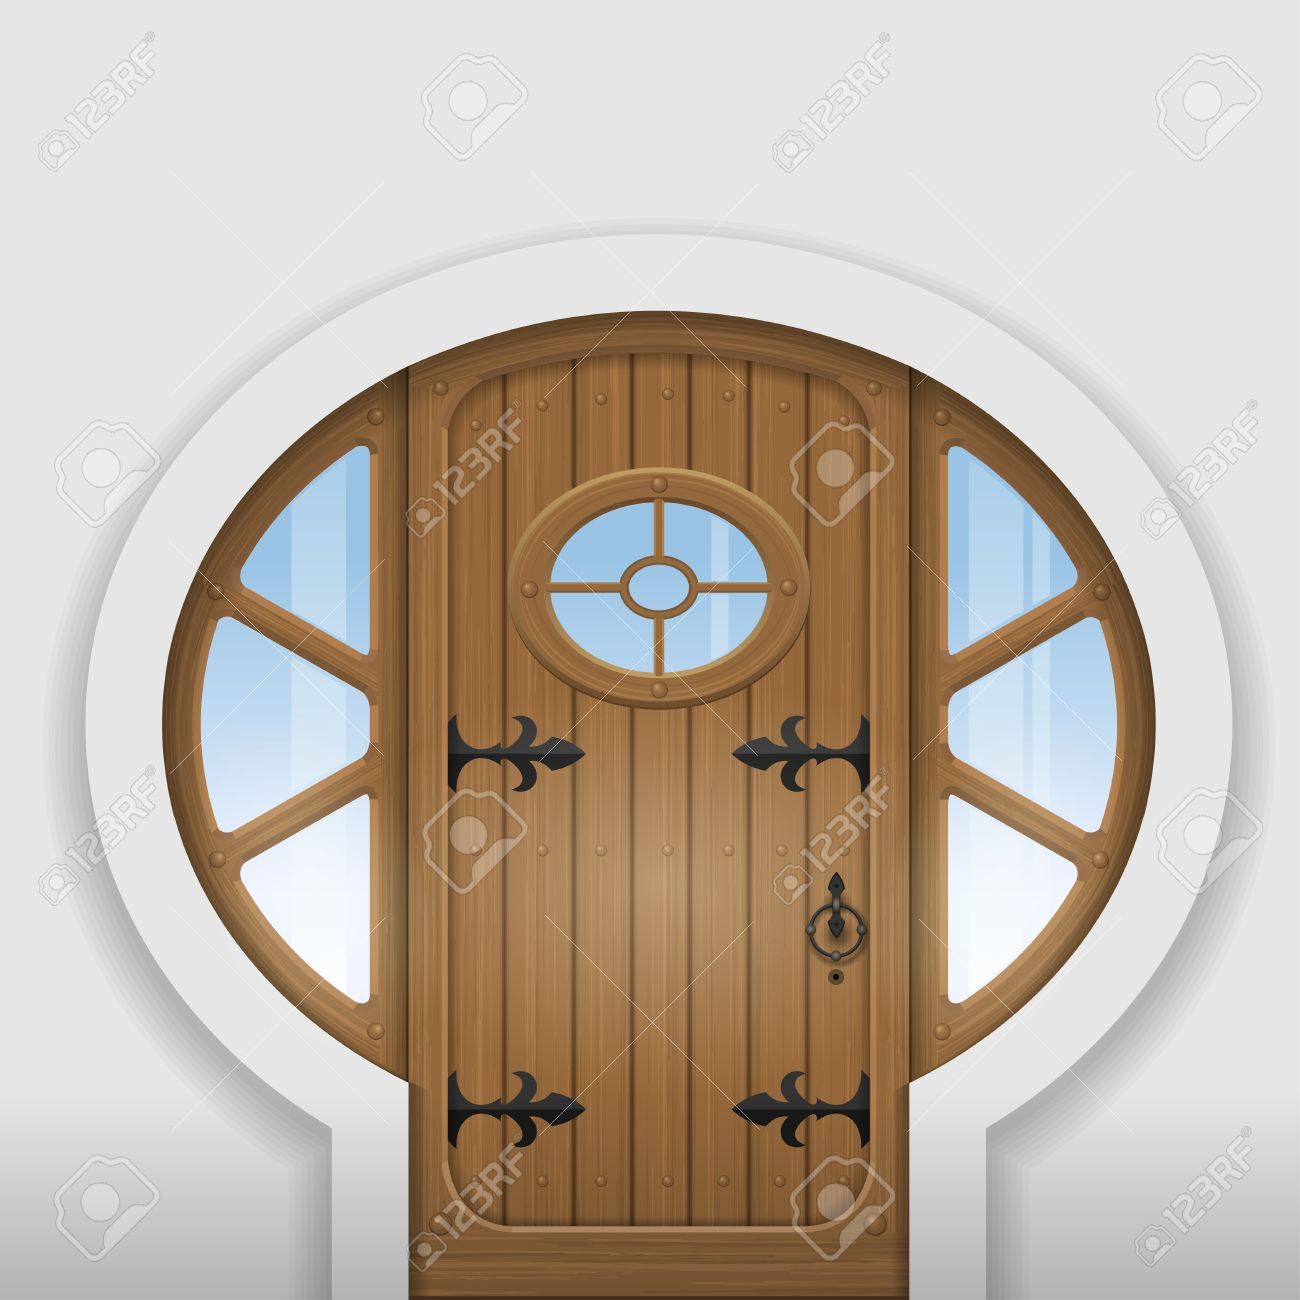 Round doorway clipart picture transparent stock Free Arch Clipart round door, Download Free Clip Art on ... picture transparent stock